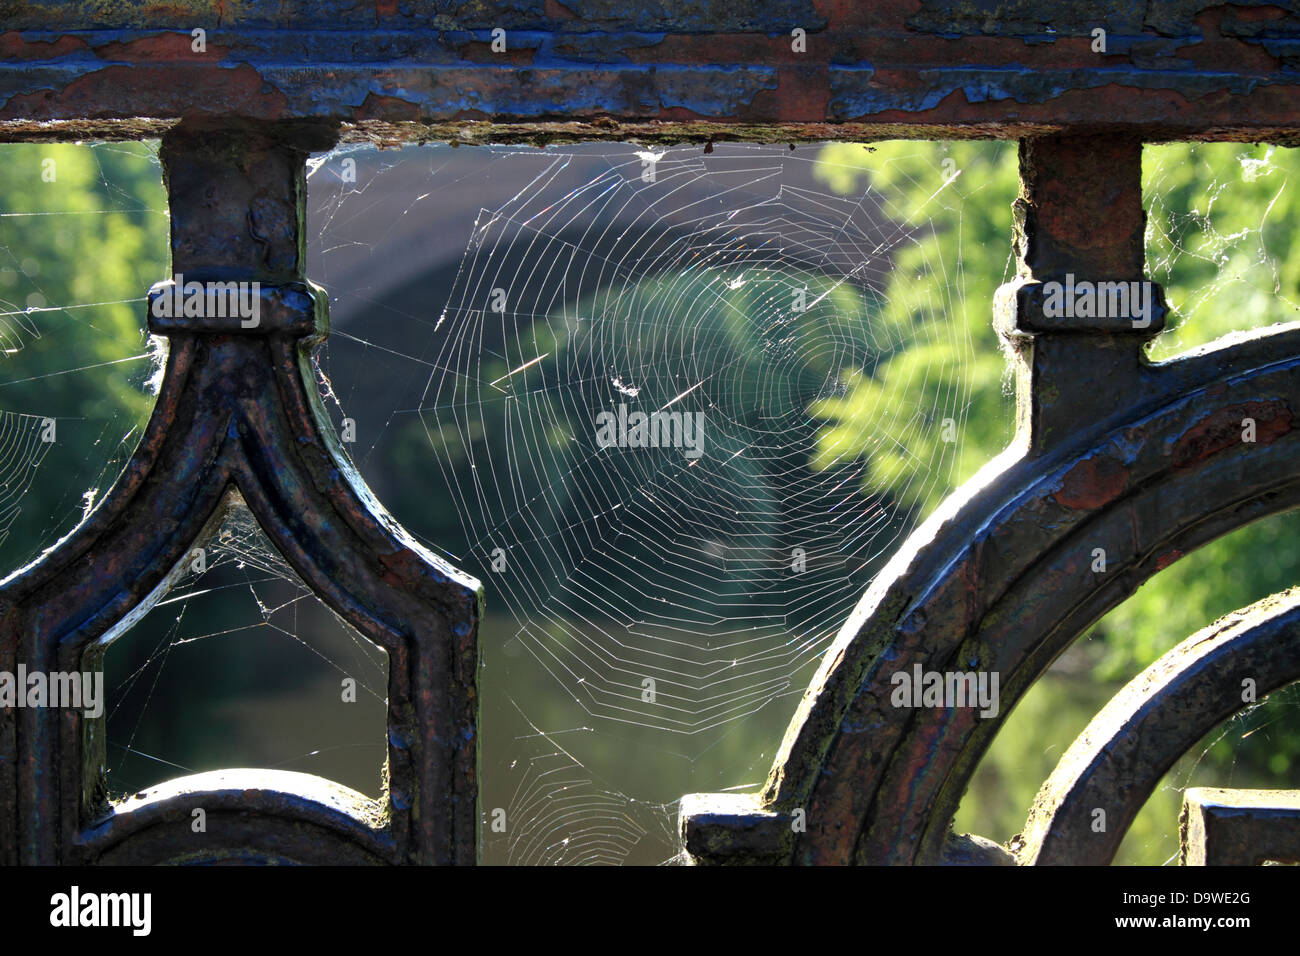 a spider web in an iron bridge fence with a backlit sunlight - Stock Image